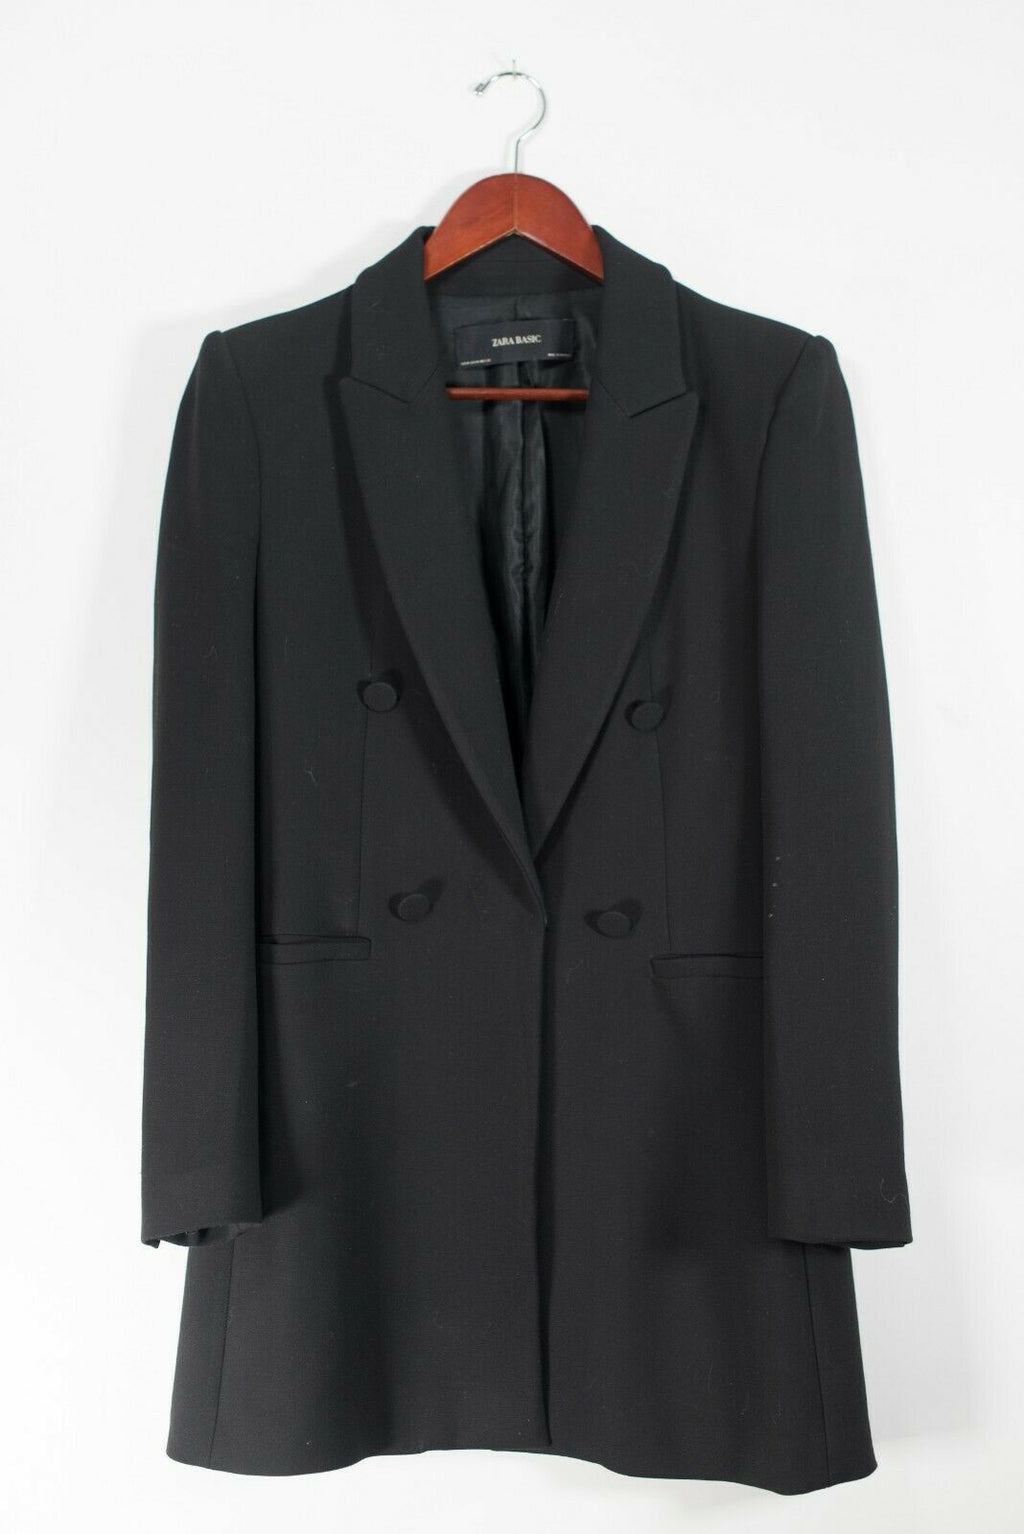 Zara Basic Women's Size Medium Black Blazer Jacket Long 4 Button Dressy Overcoat